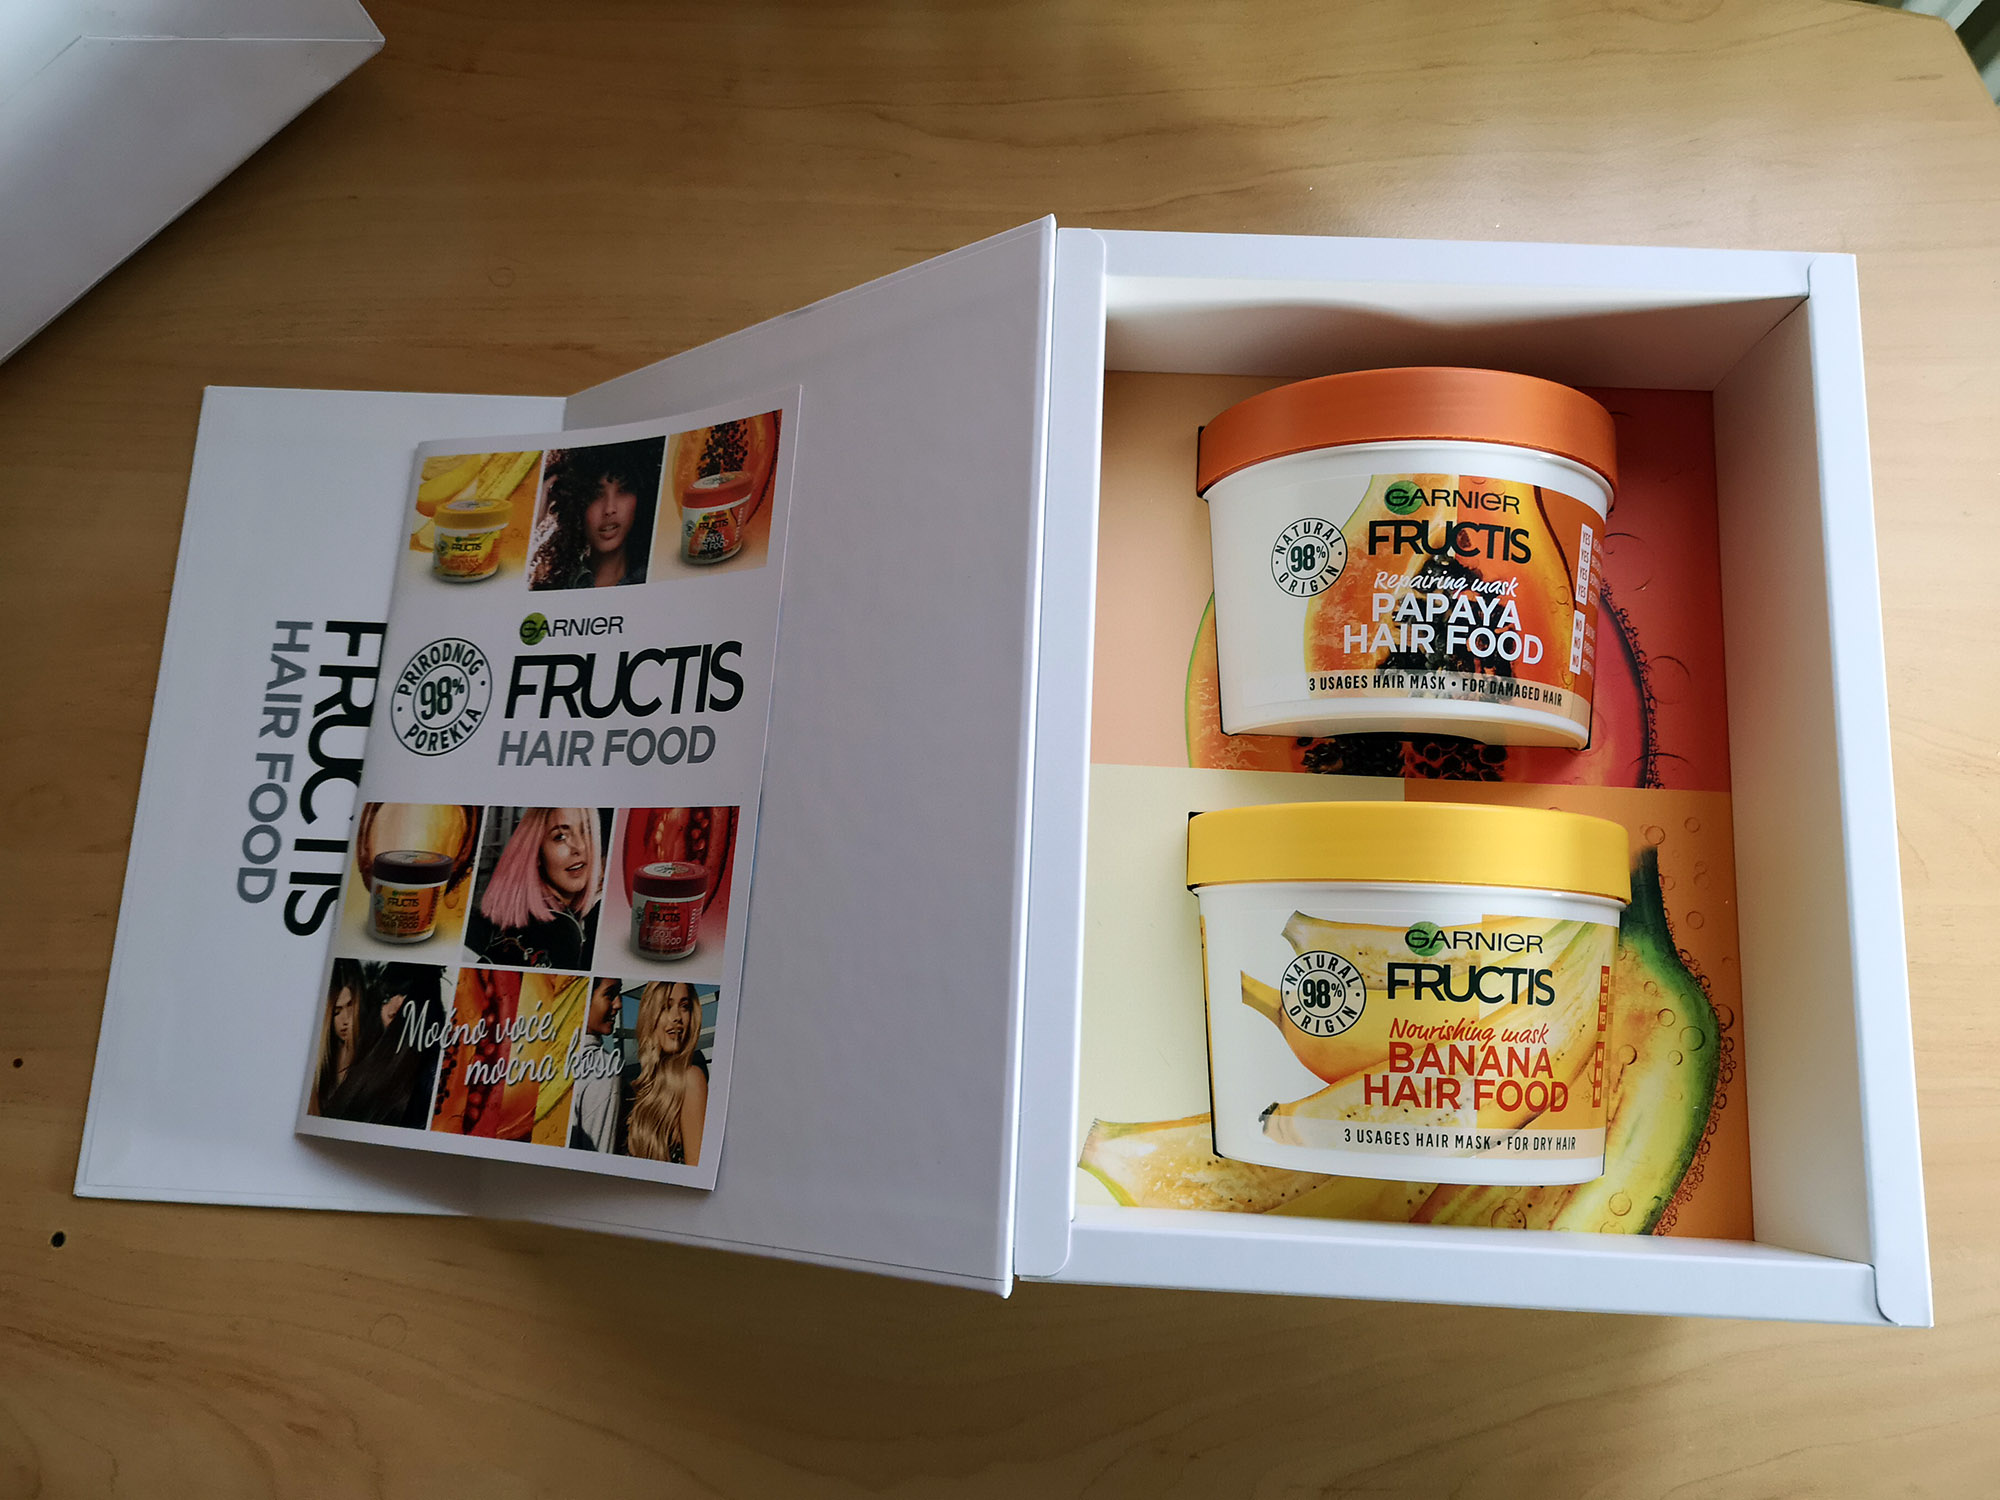 Garnier Fructis Hair Food Papaja i Banana; Foto: kovalska.rs